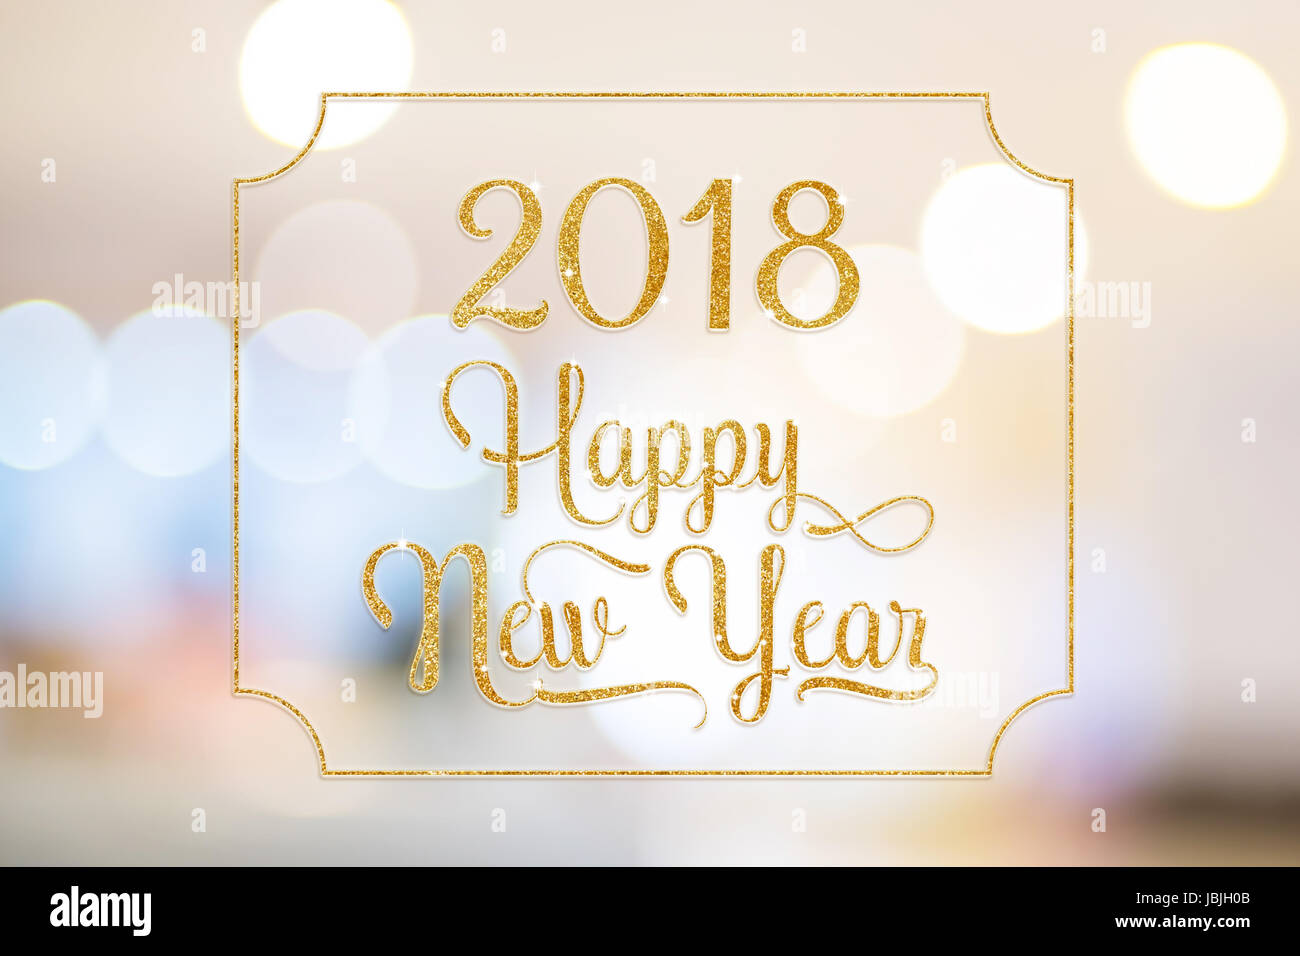 Happy New Year 2018 Gold Sparkling Glitter Word With Golden Frame At